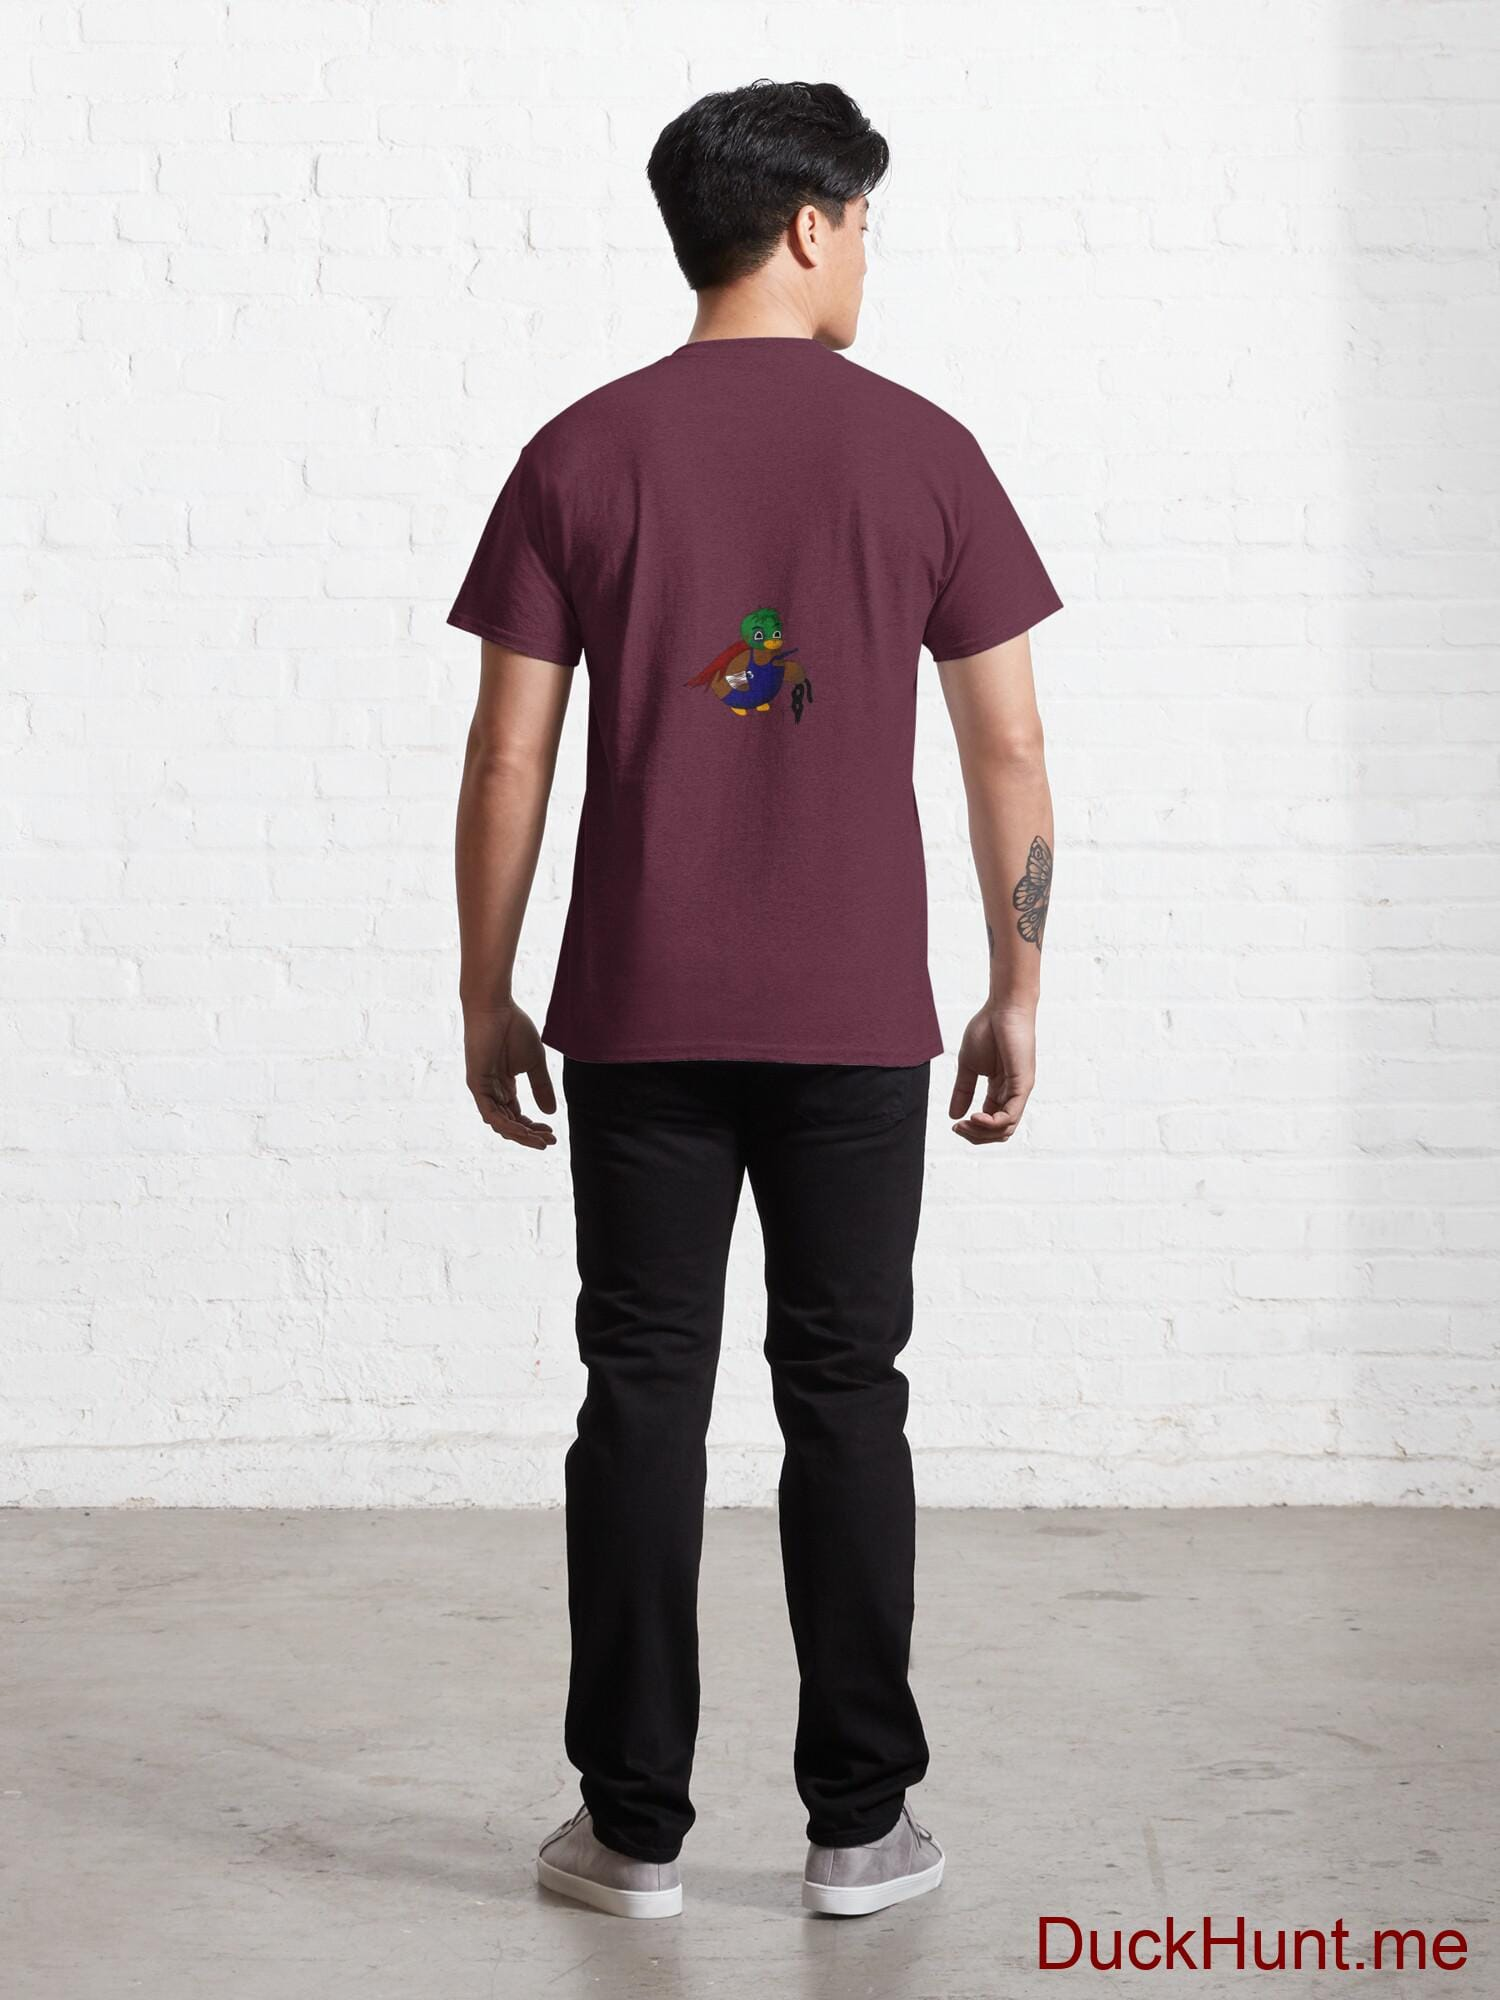 Dead DuckHunt Boss (smokeless) Dark Red Classic T-Shirt (Back printed) alternative image 3